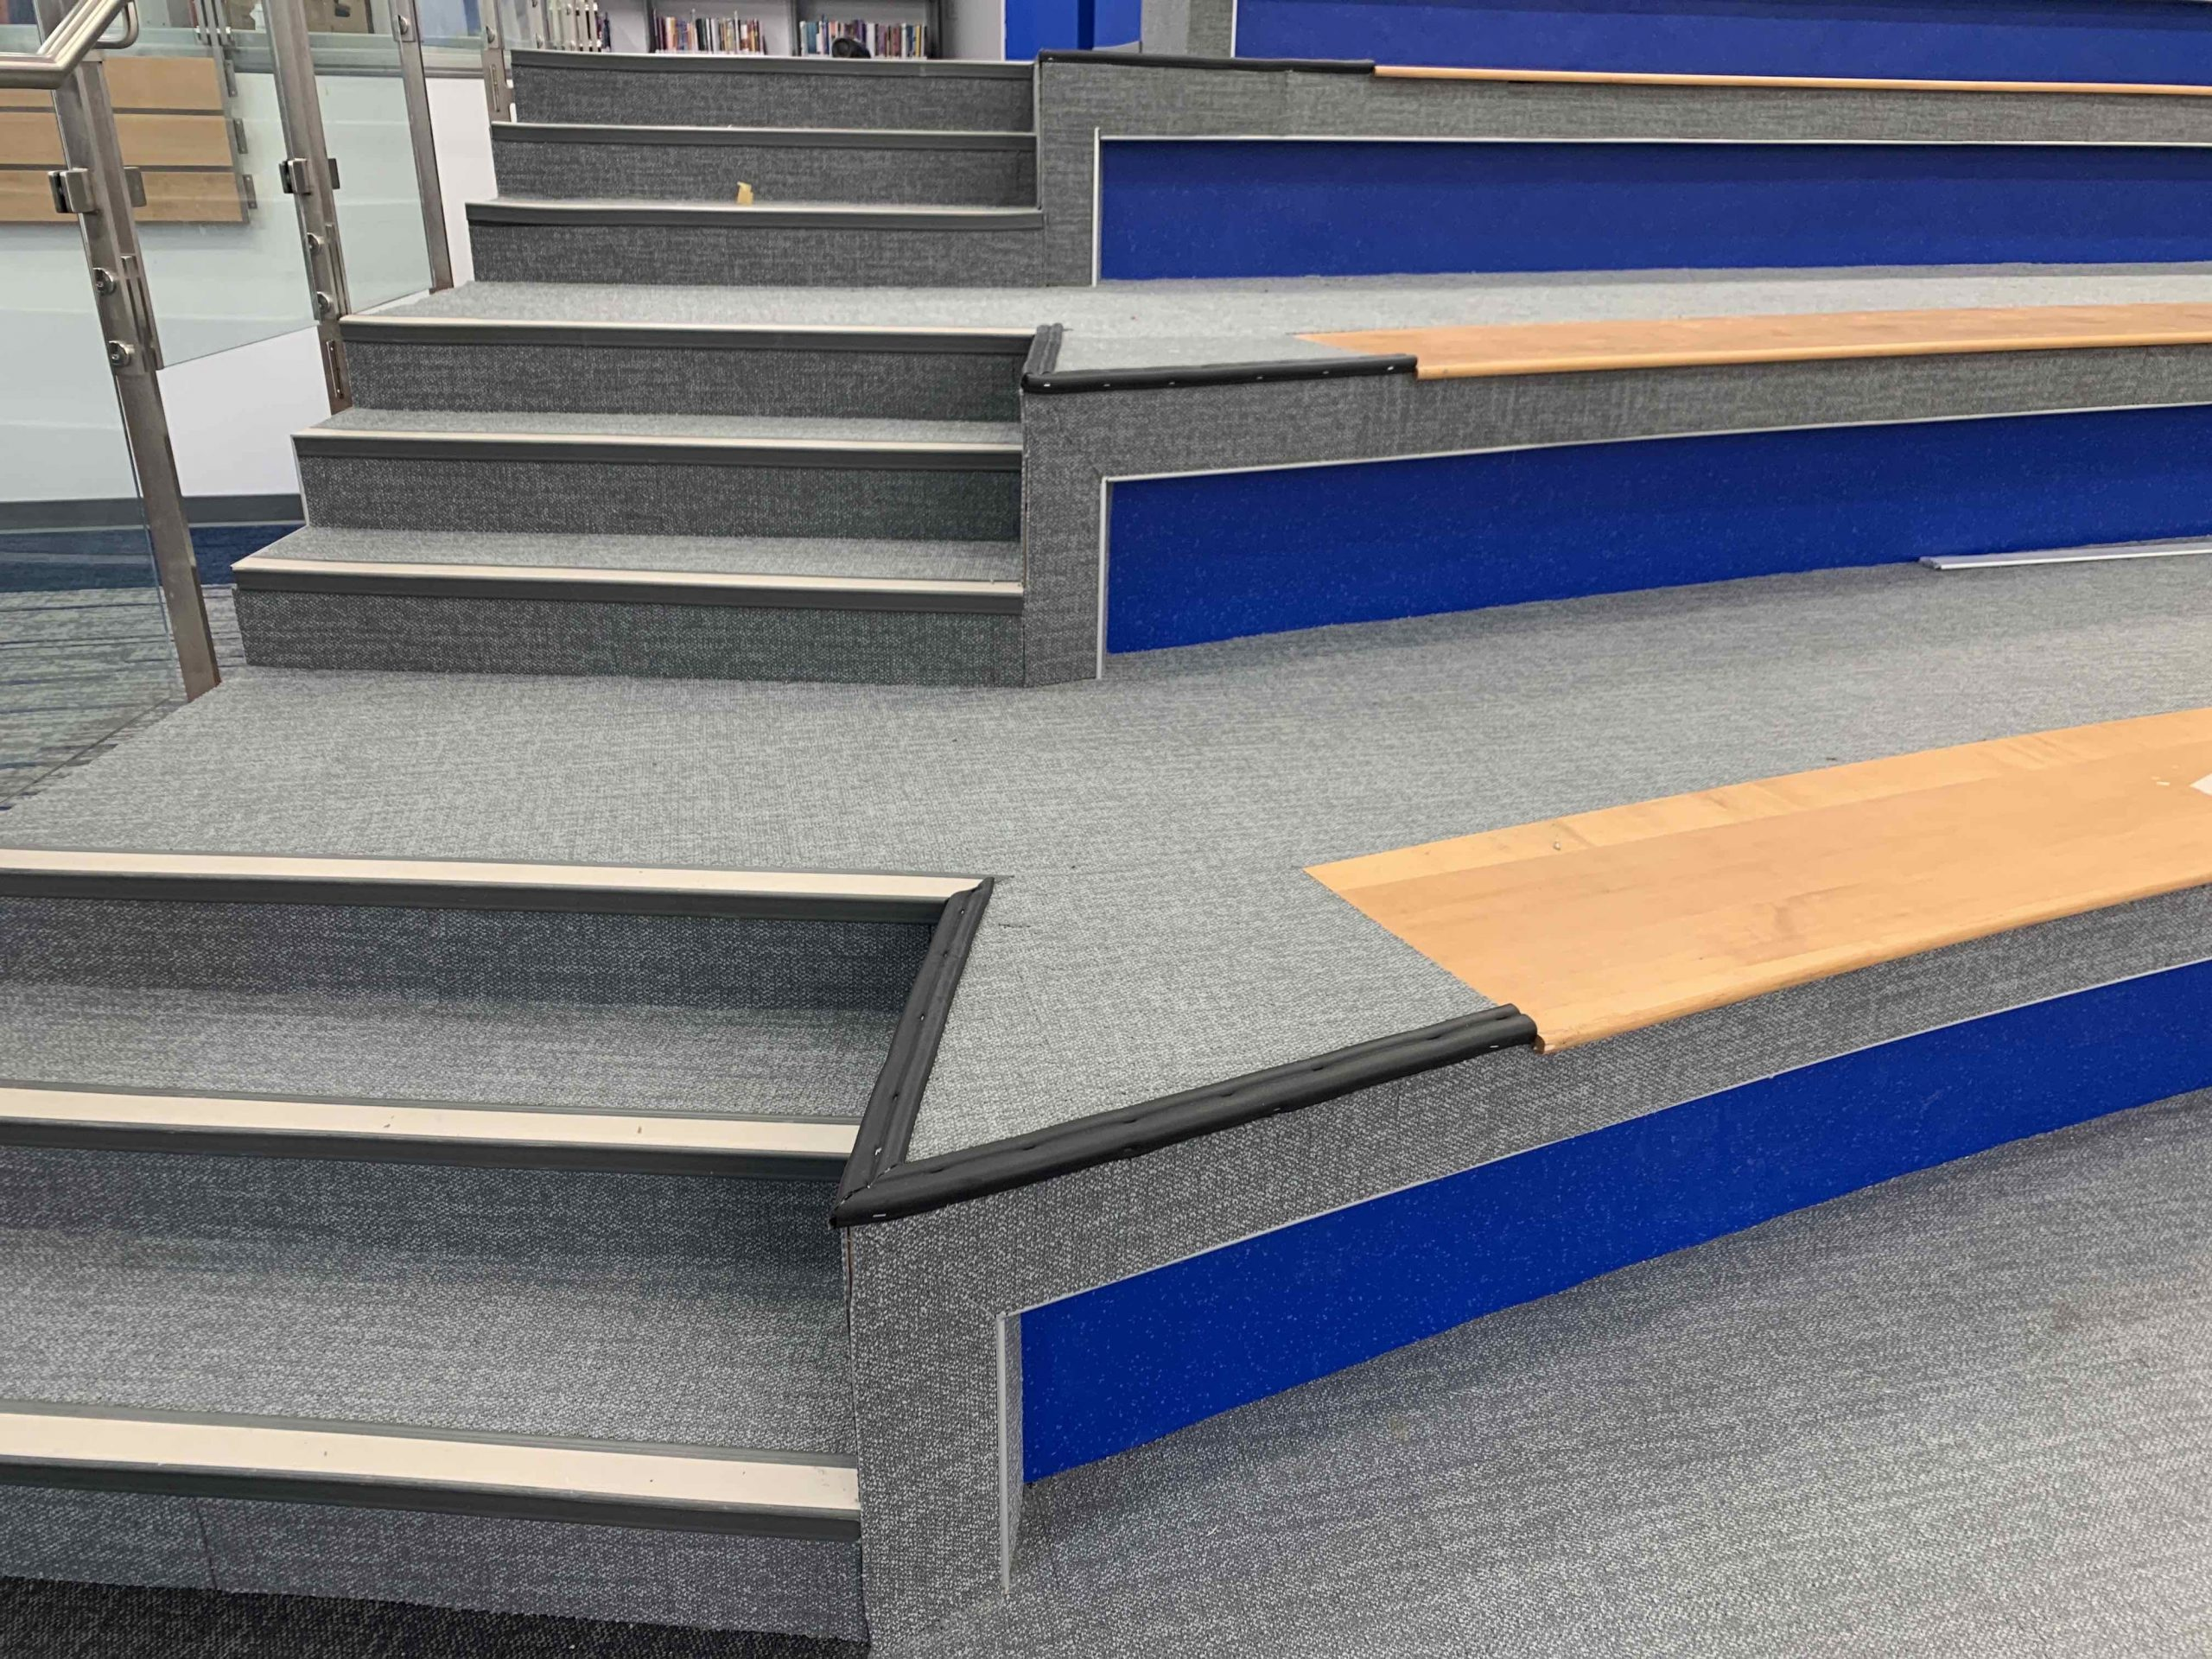 Library Learning Stairs image 0